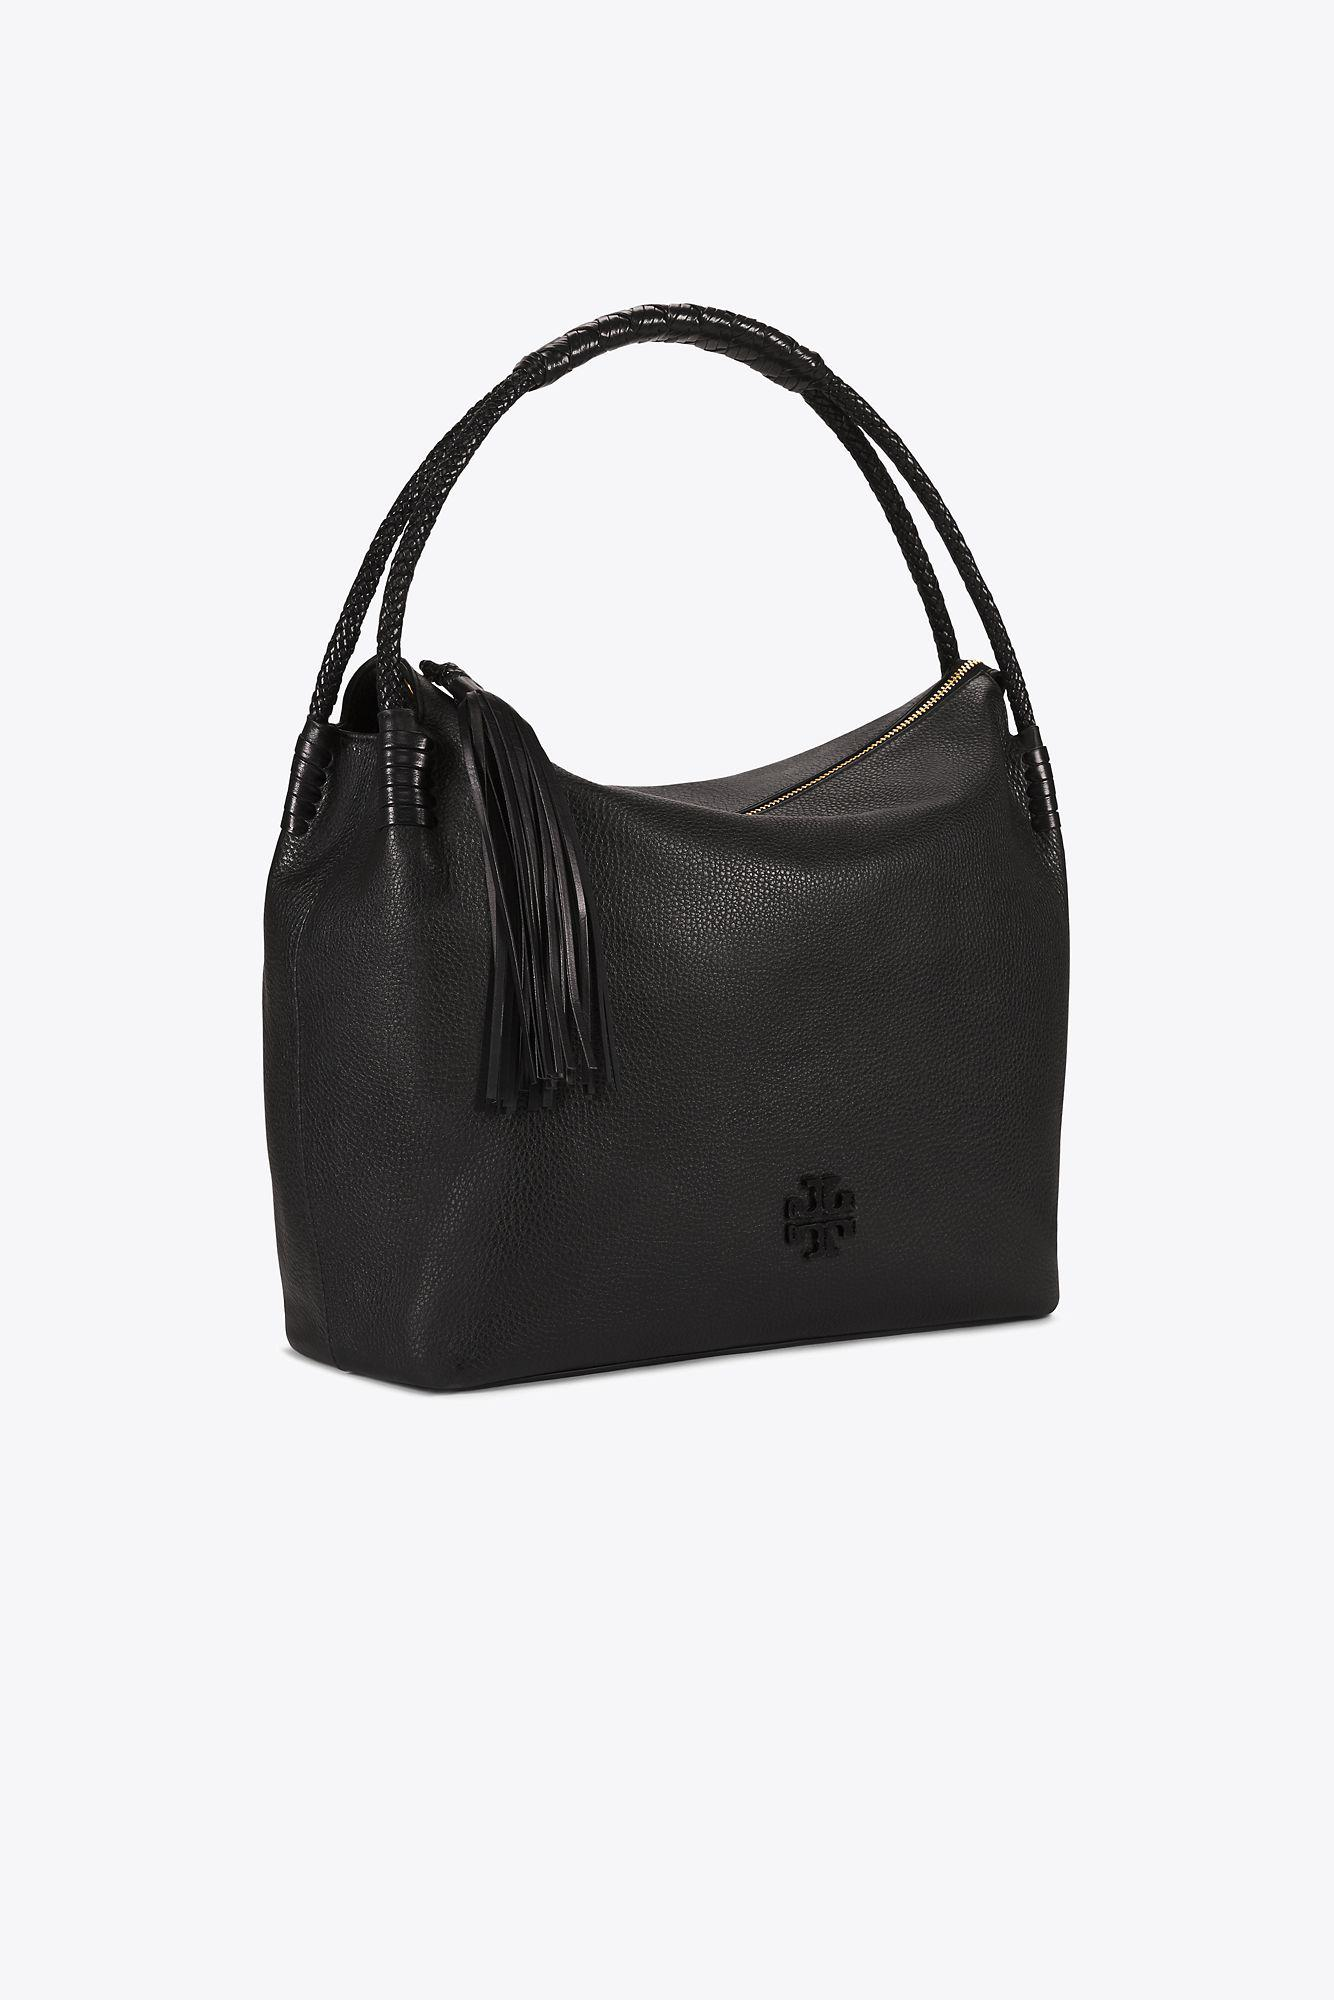 7103698ed17 Tory Burch Taylor Hobo in Black - Lyst